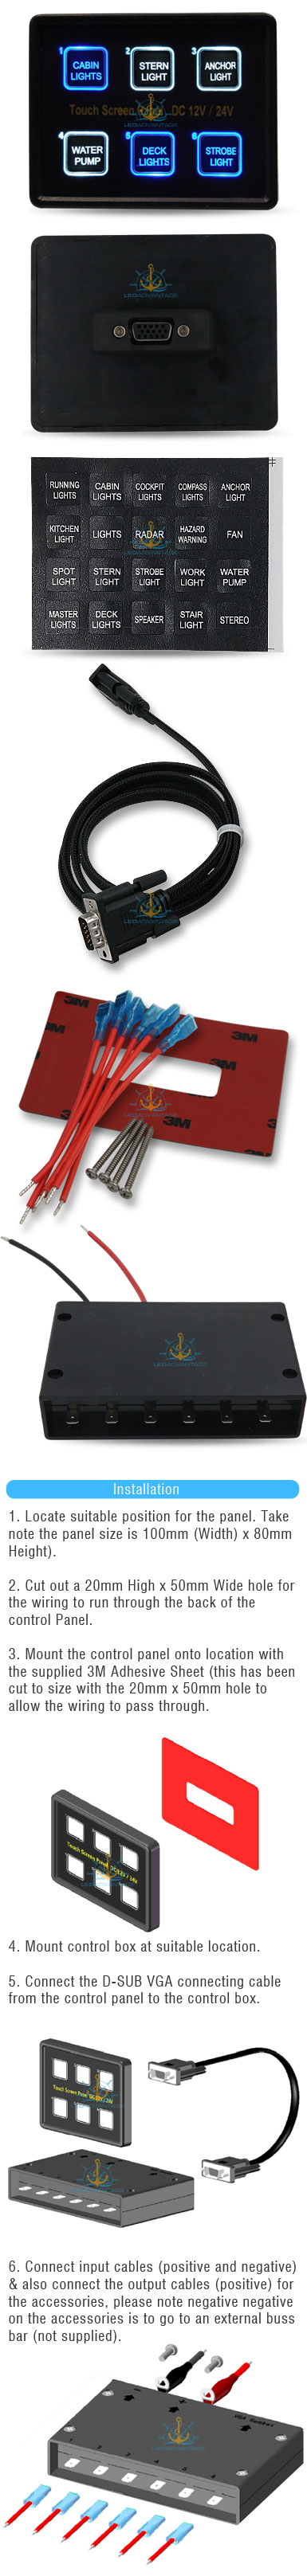 2 X 12v 24v 6 Gang Marine Led Touch Panel Control C Breaker Boat Wiring Diagram Also Light Switch As Well Trailer Lights Introducing Our Newest And Most Innovative With Backlighting